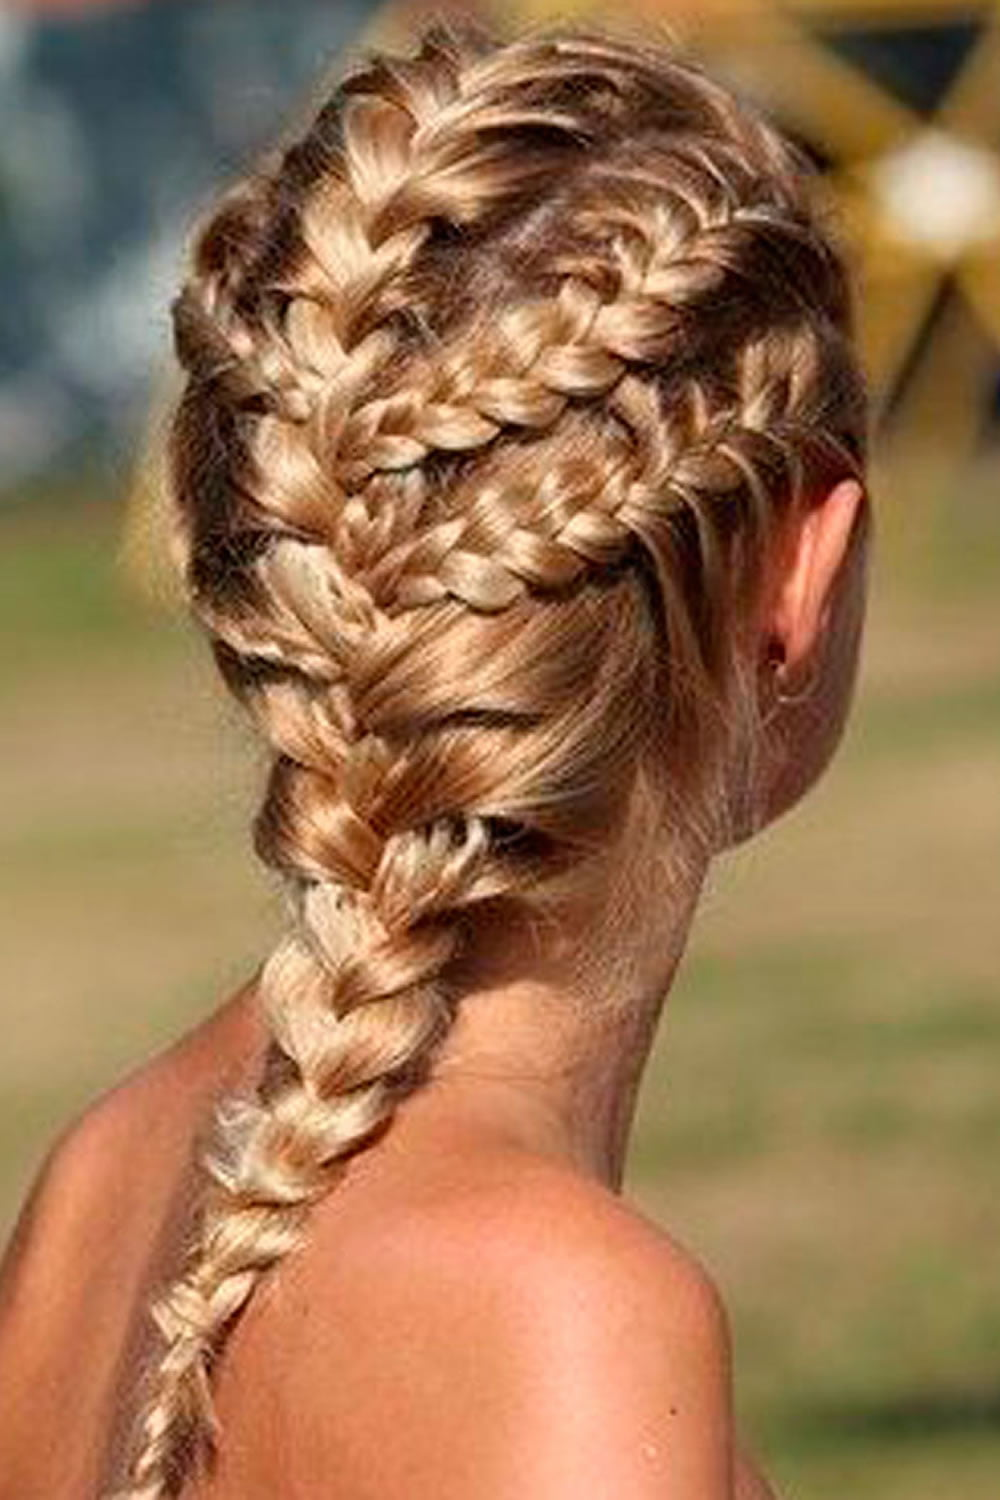 2018 Christmas Hairstyles: Braided Hairstyles for the 2018 ...